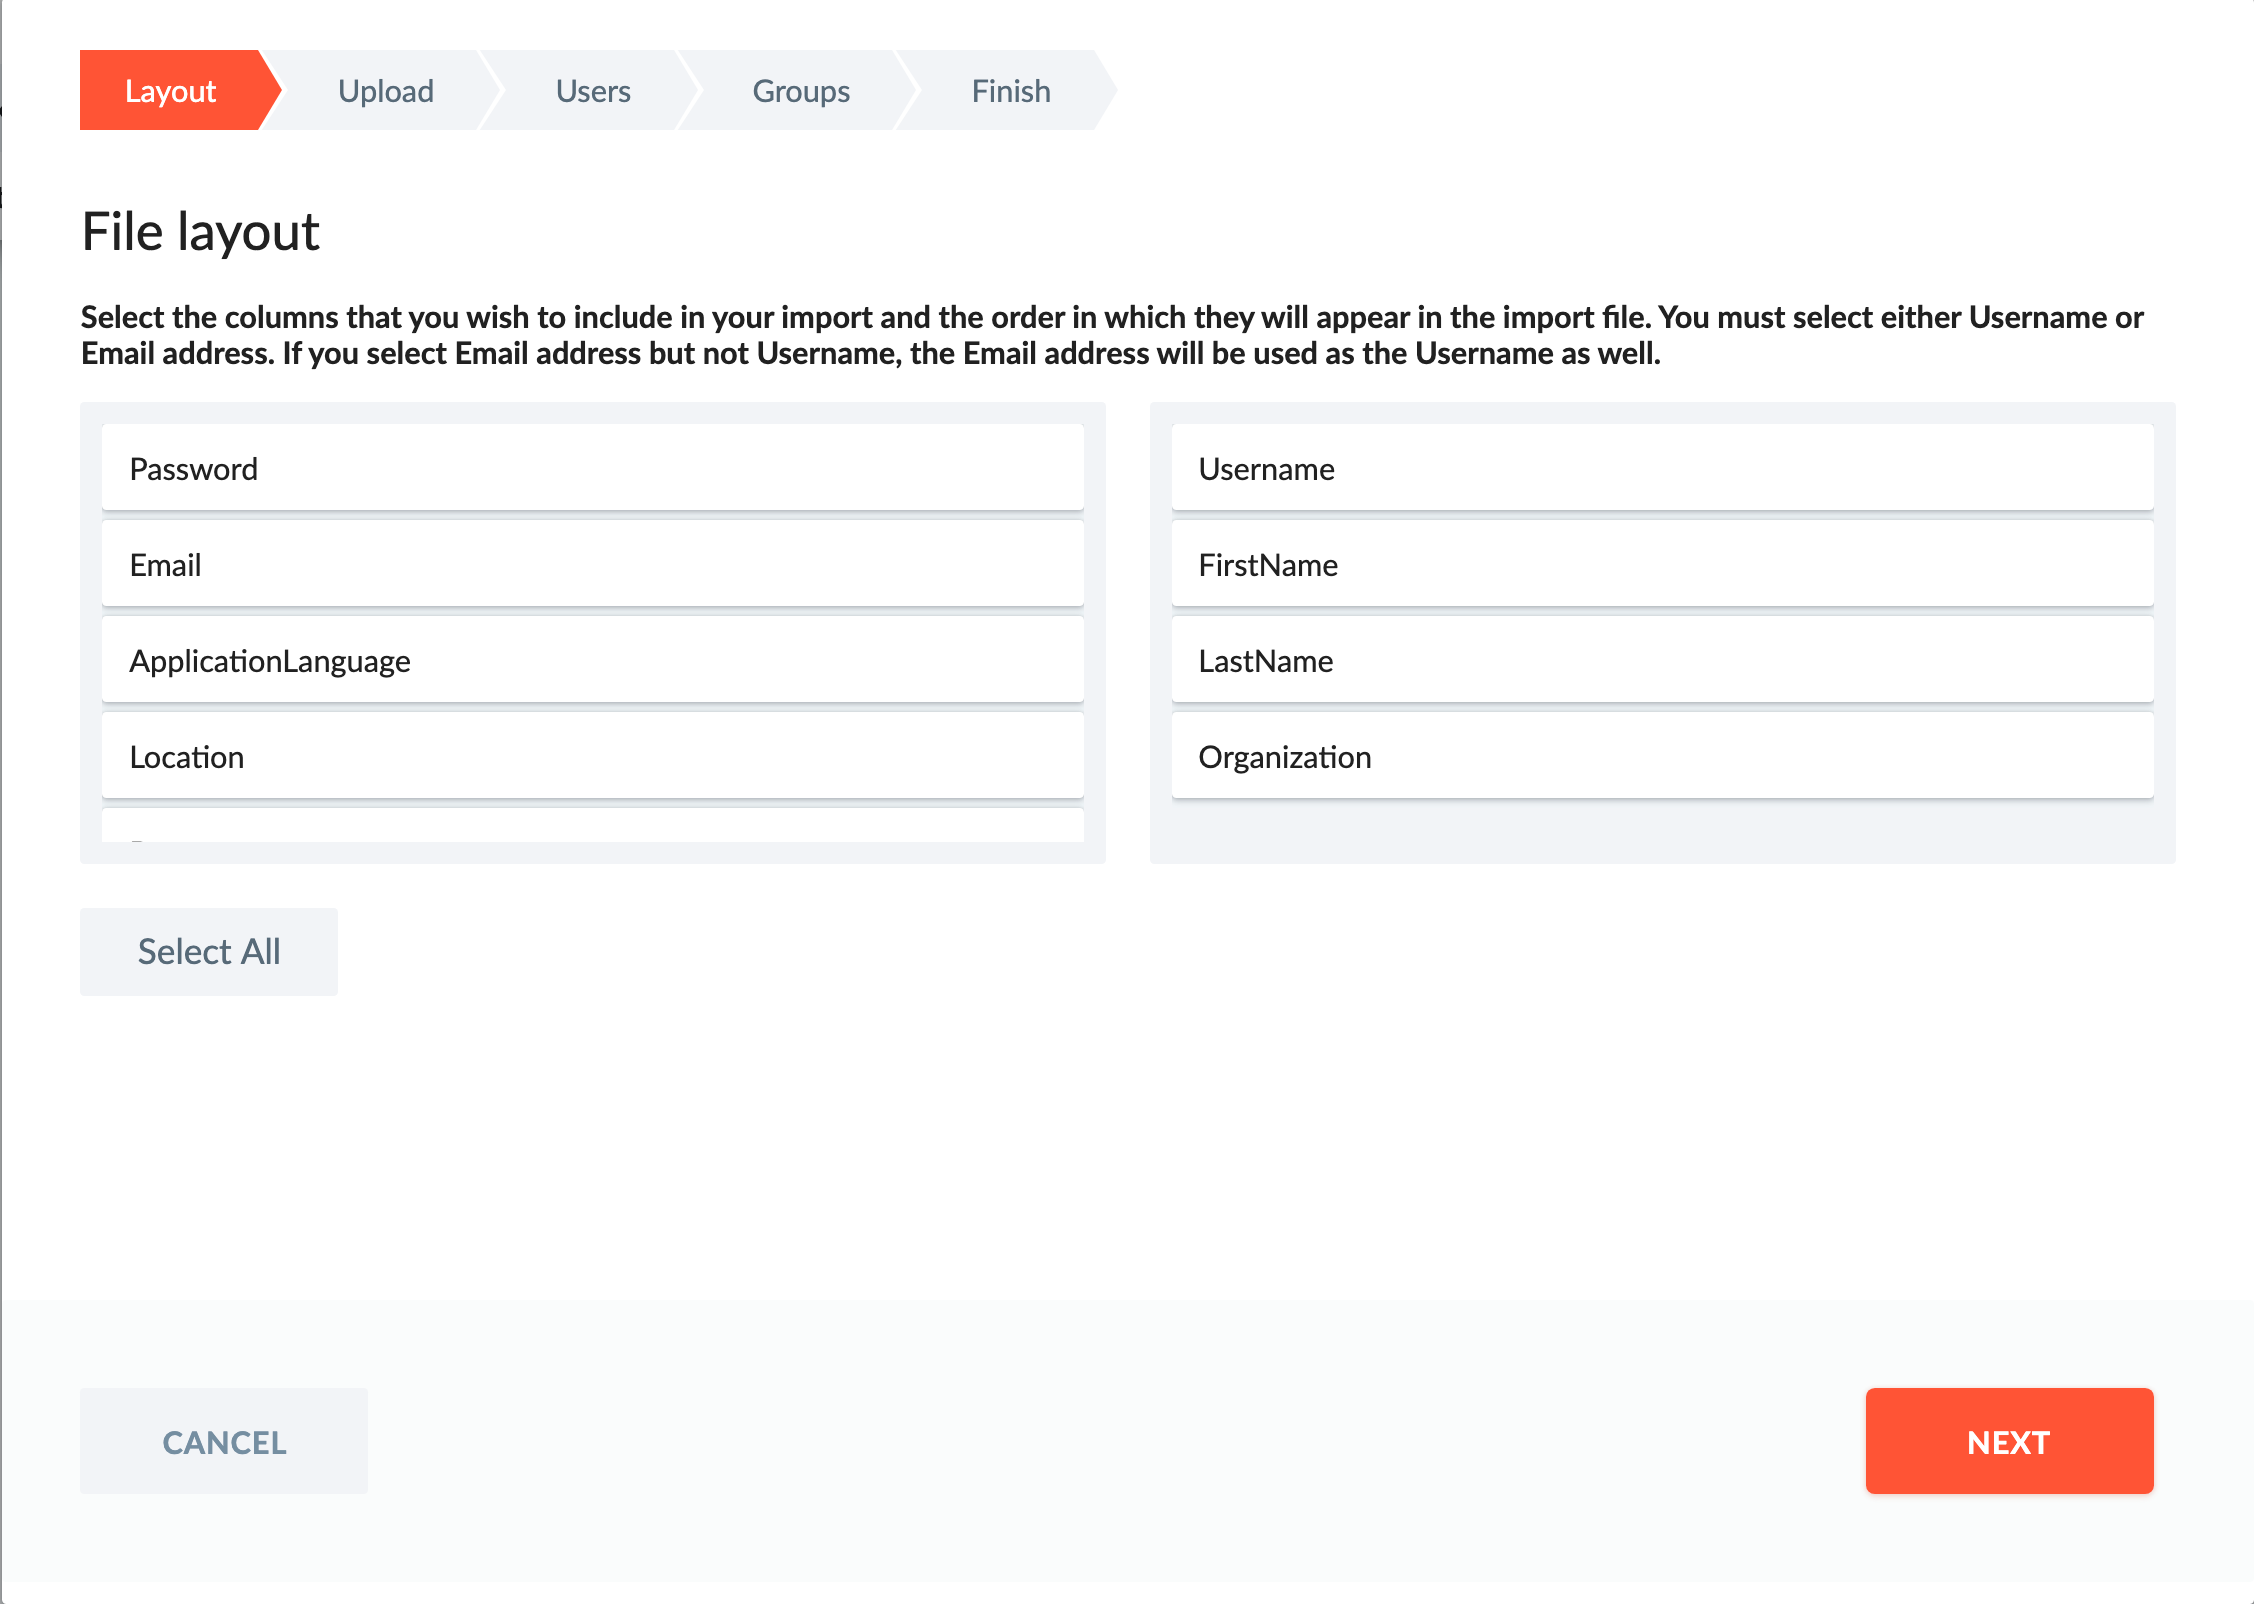 Full contact management with custom fields and import capabilities.